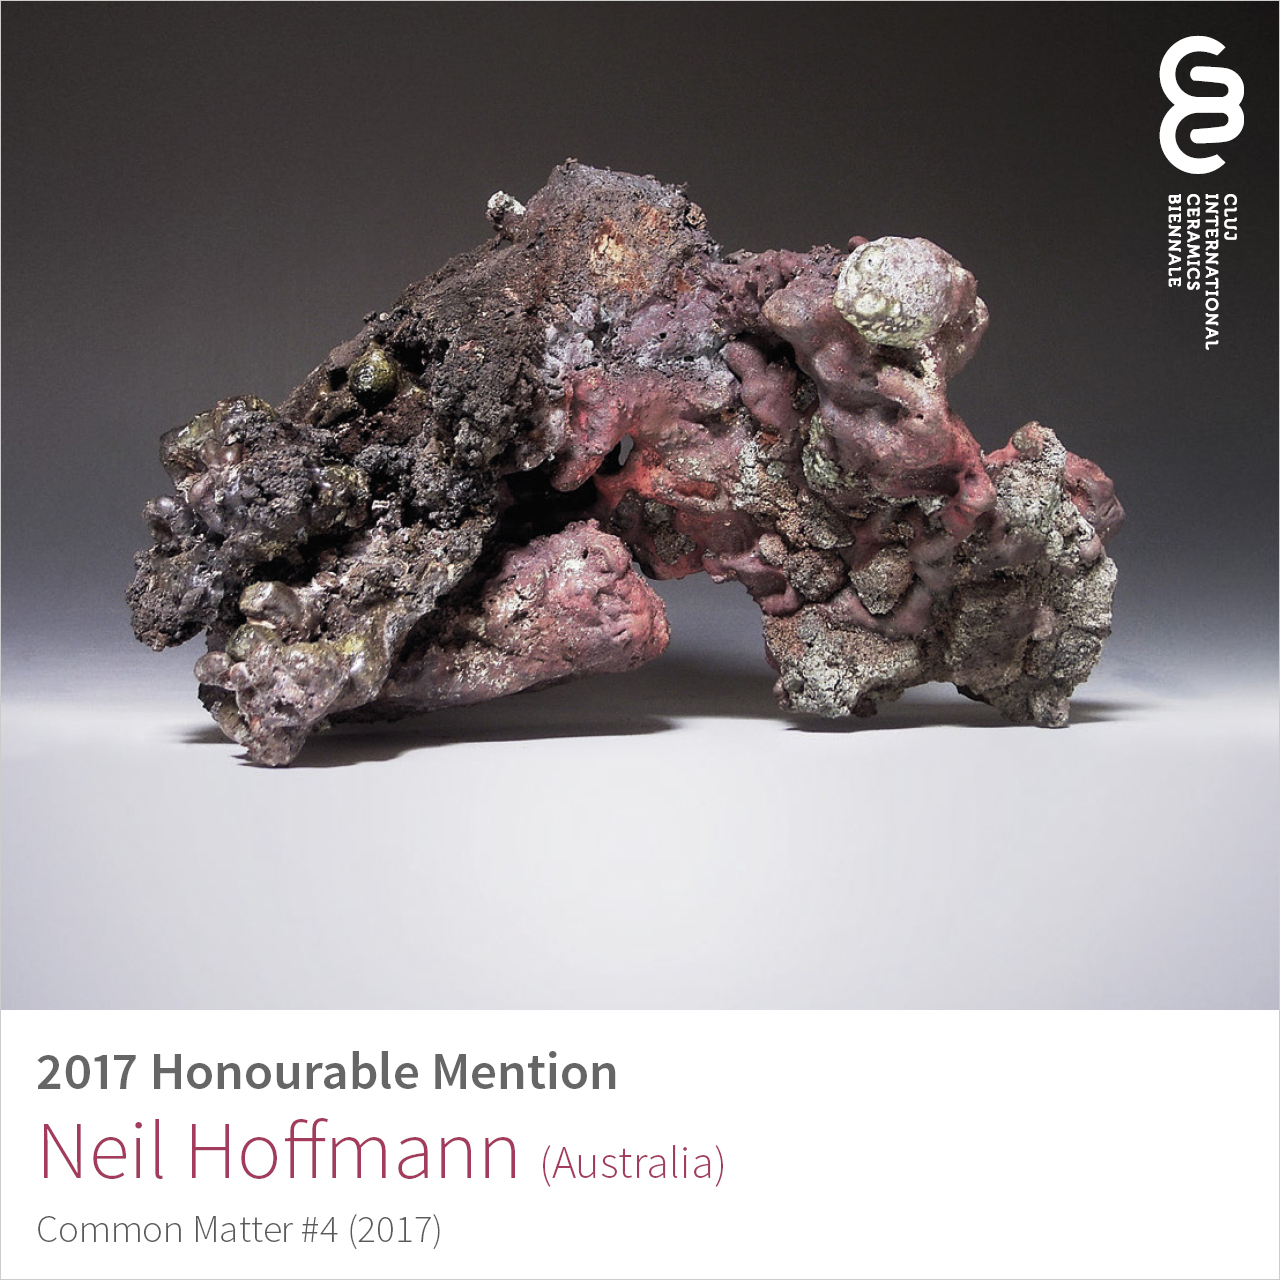 Neil Hoffmann (Australia), Honourable Mention at Cluj Ceramics Biennale 2017